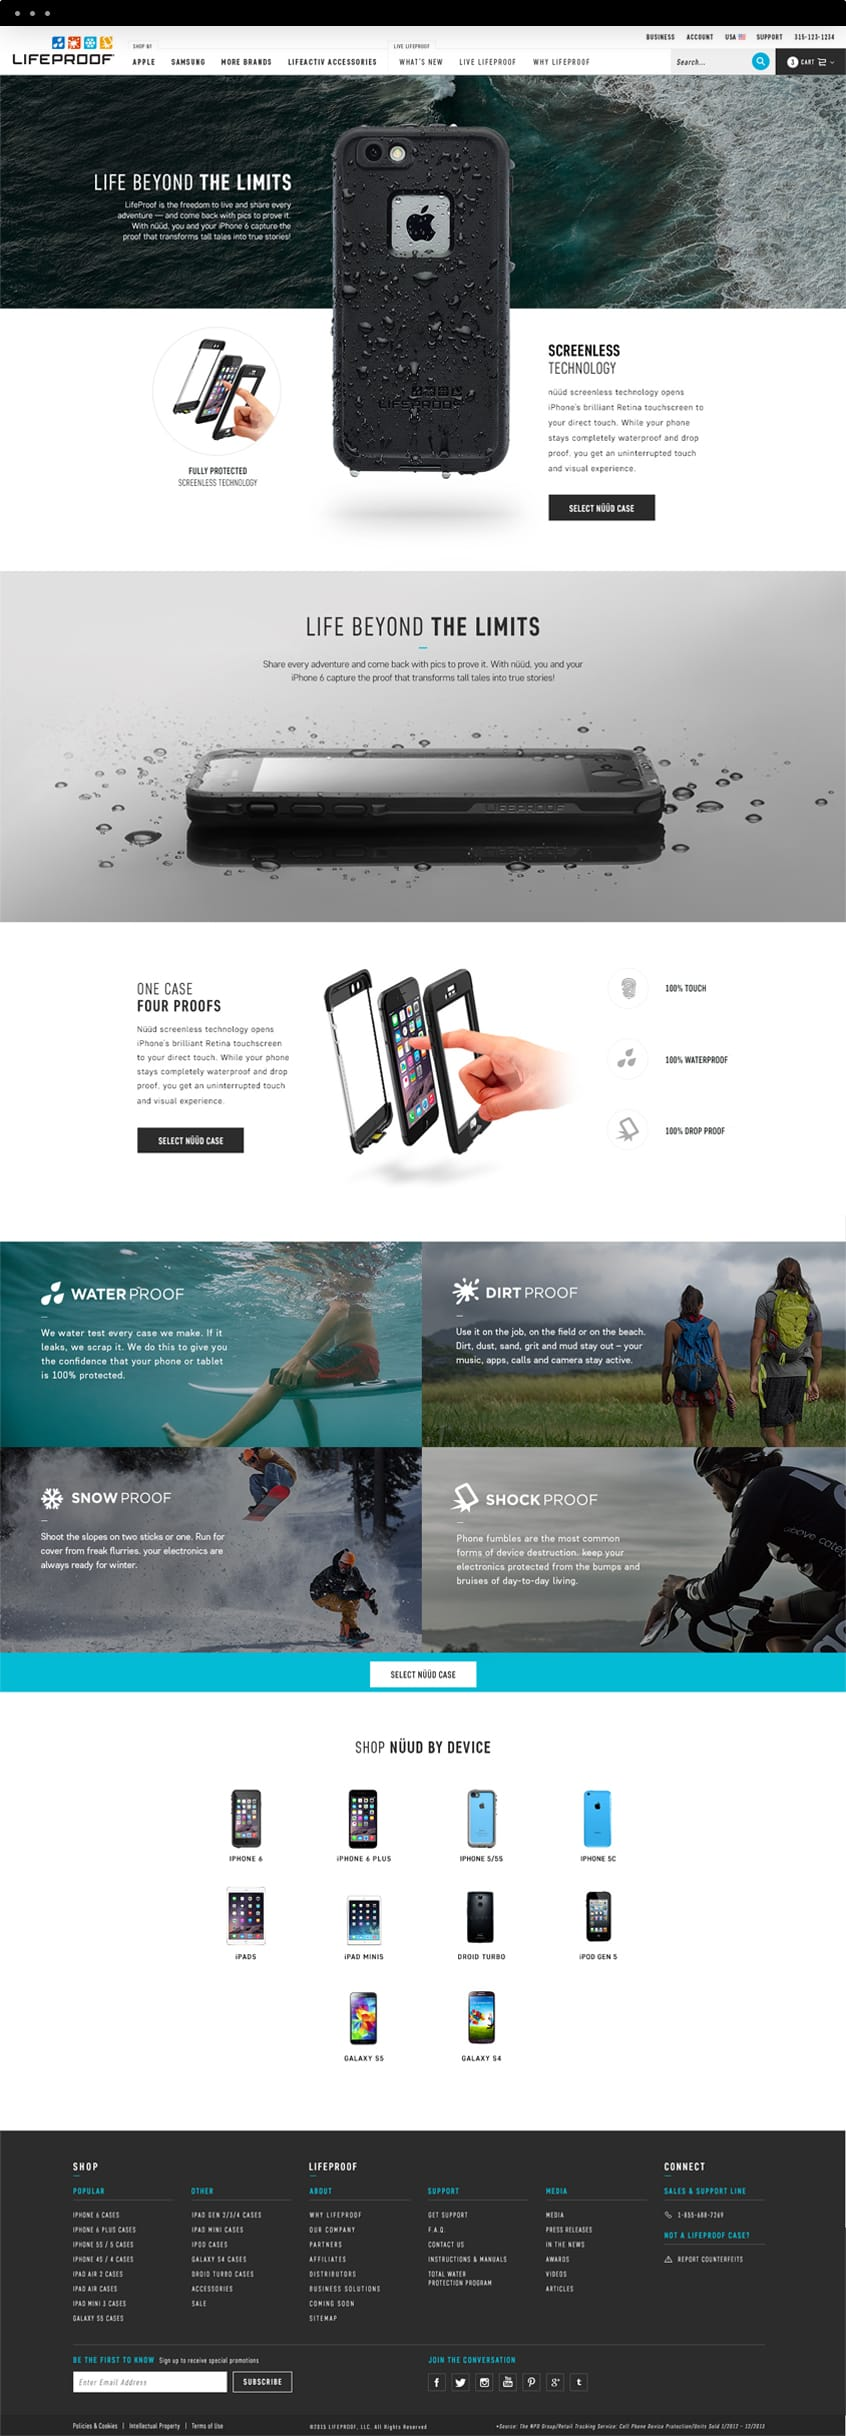 Lifeproof Series Page